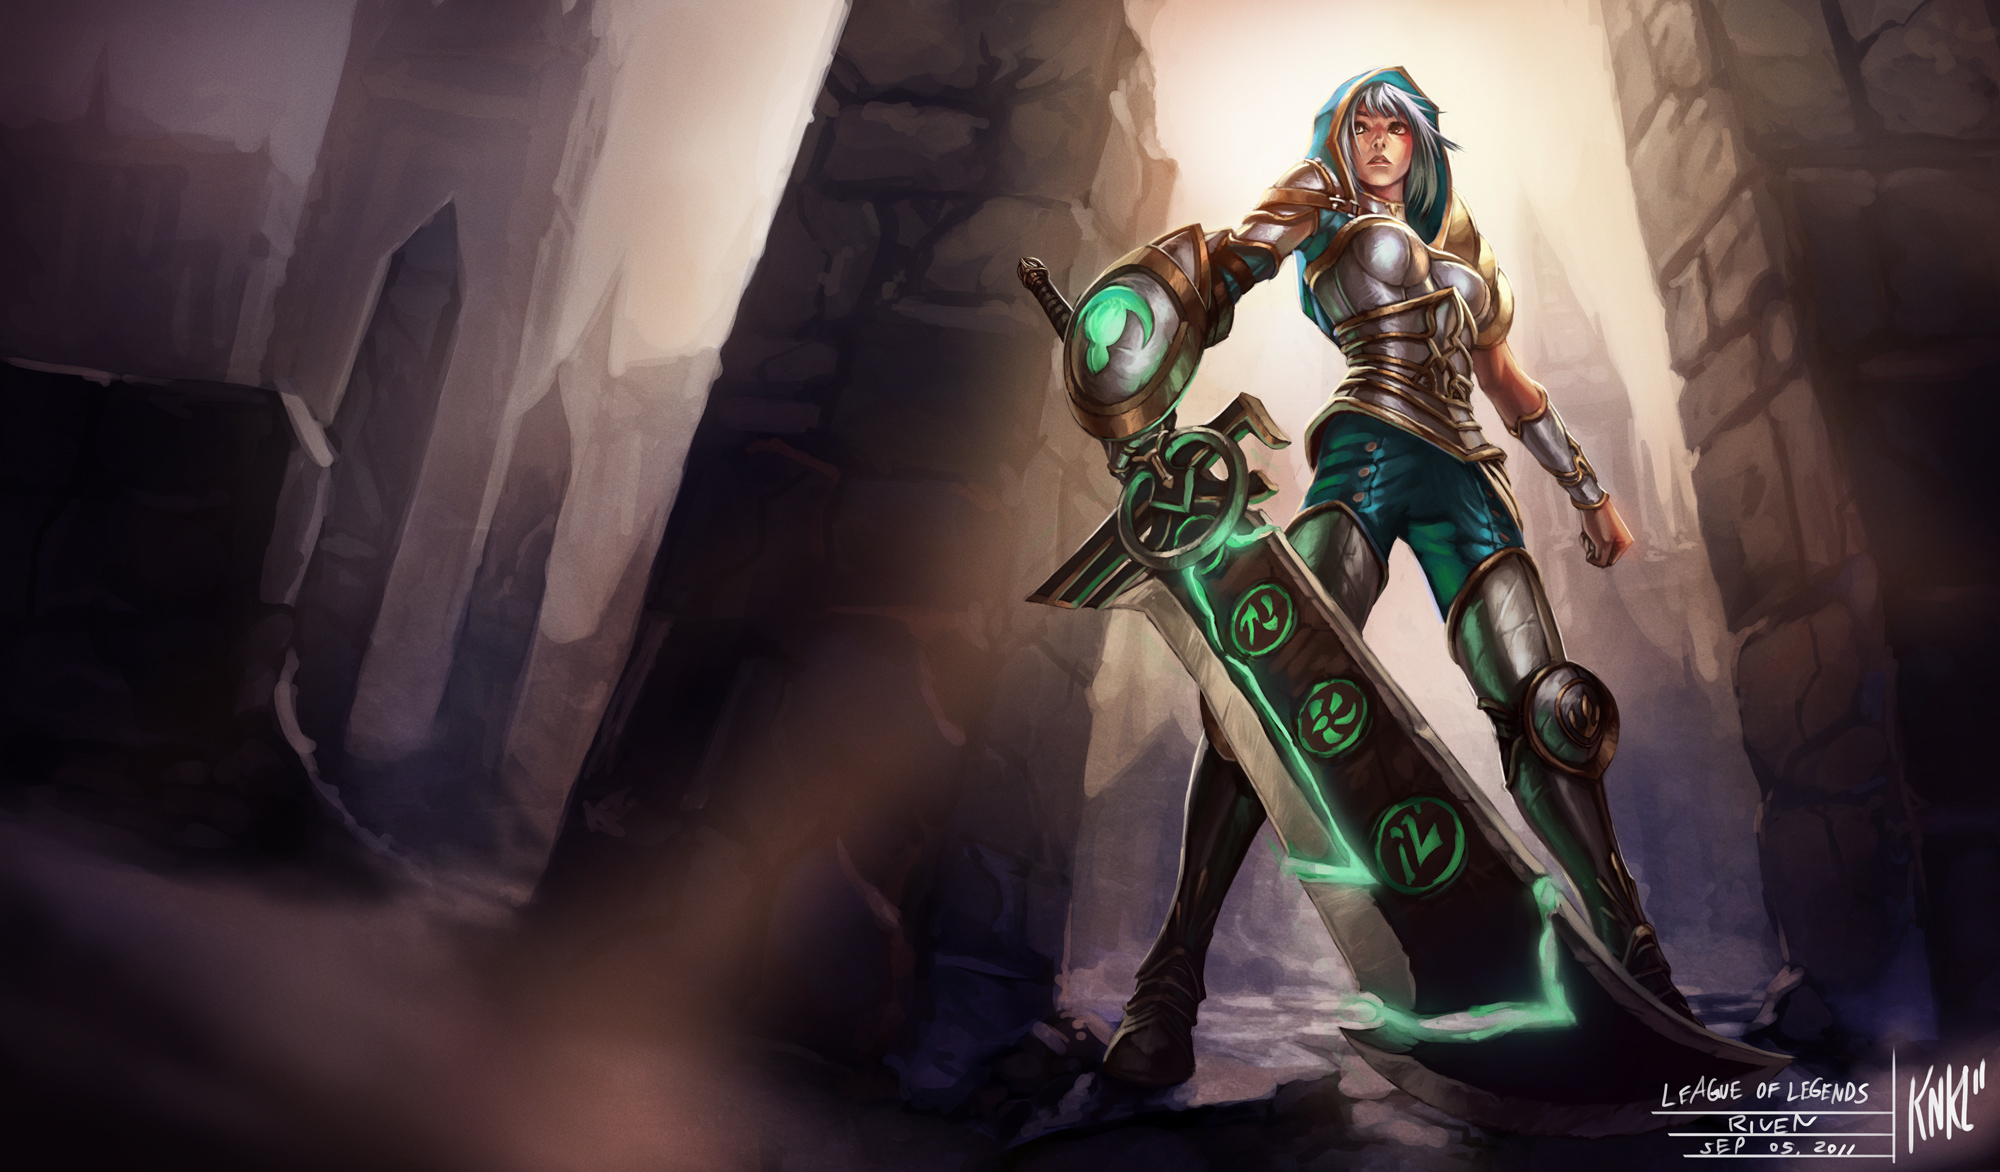 LoL - Redeemed Riven by Knockwurst